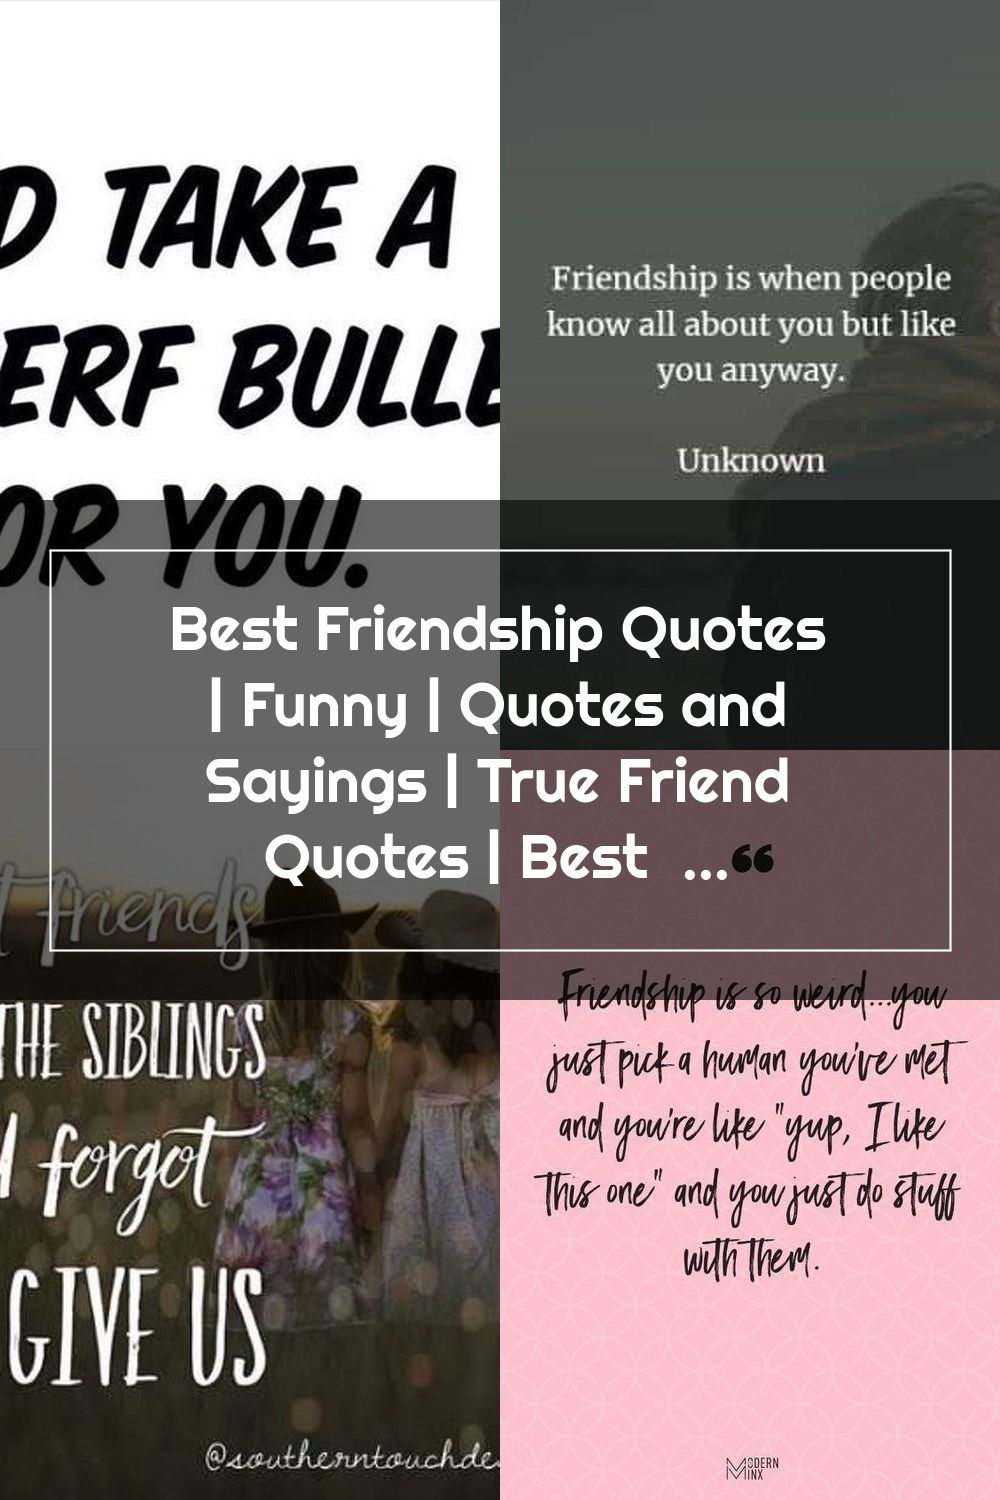 Best Friendship Quotes Funny Quotes And Sayings True Friend Quotes En 2020